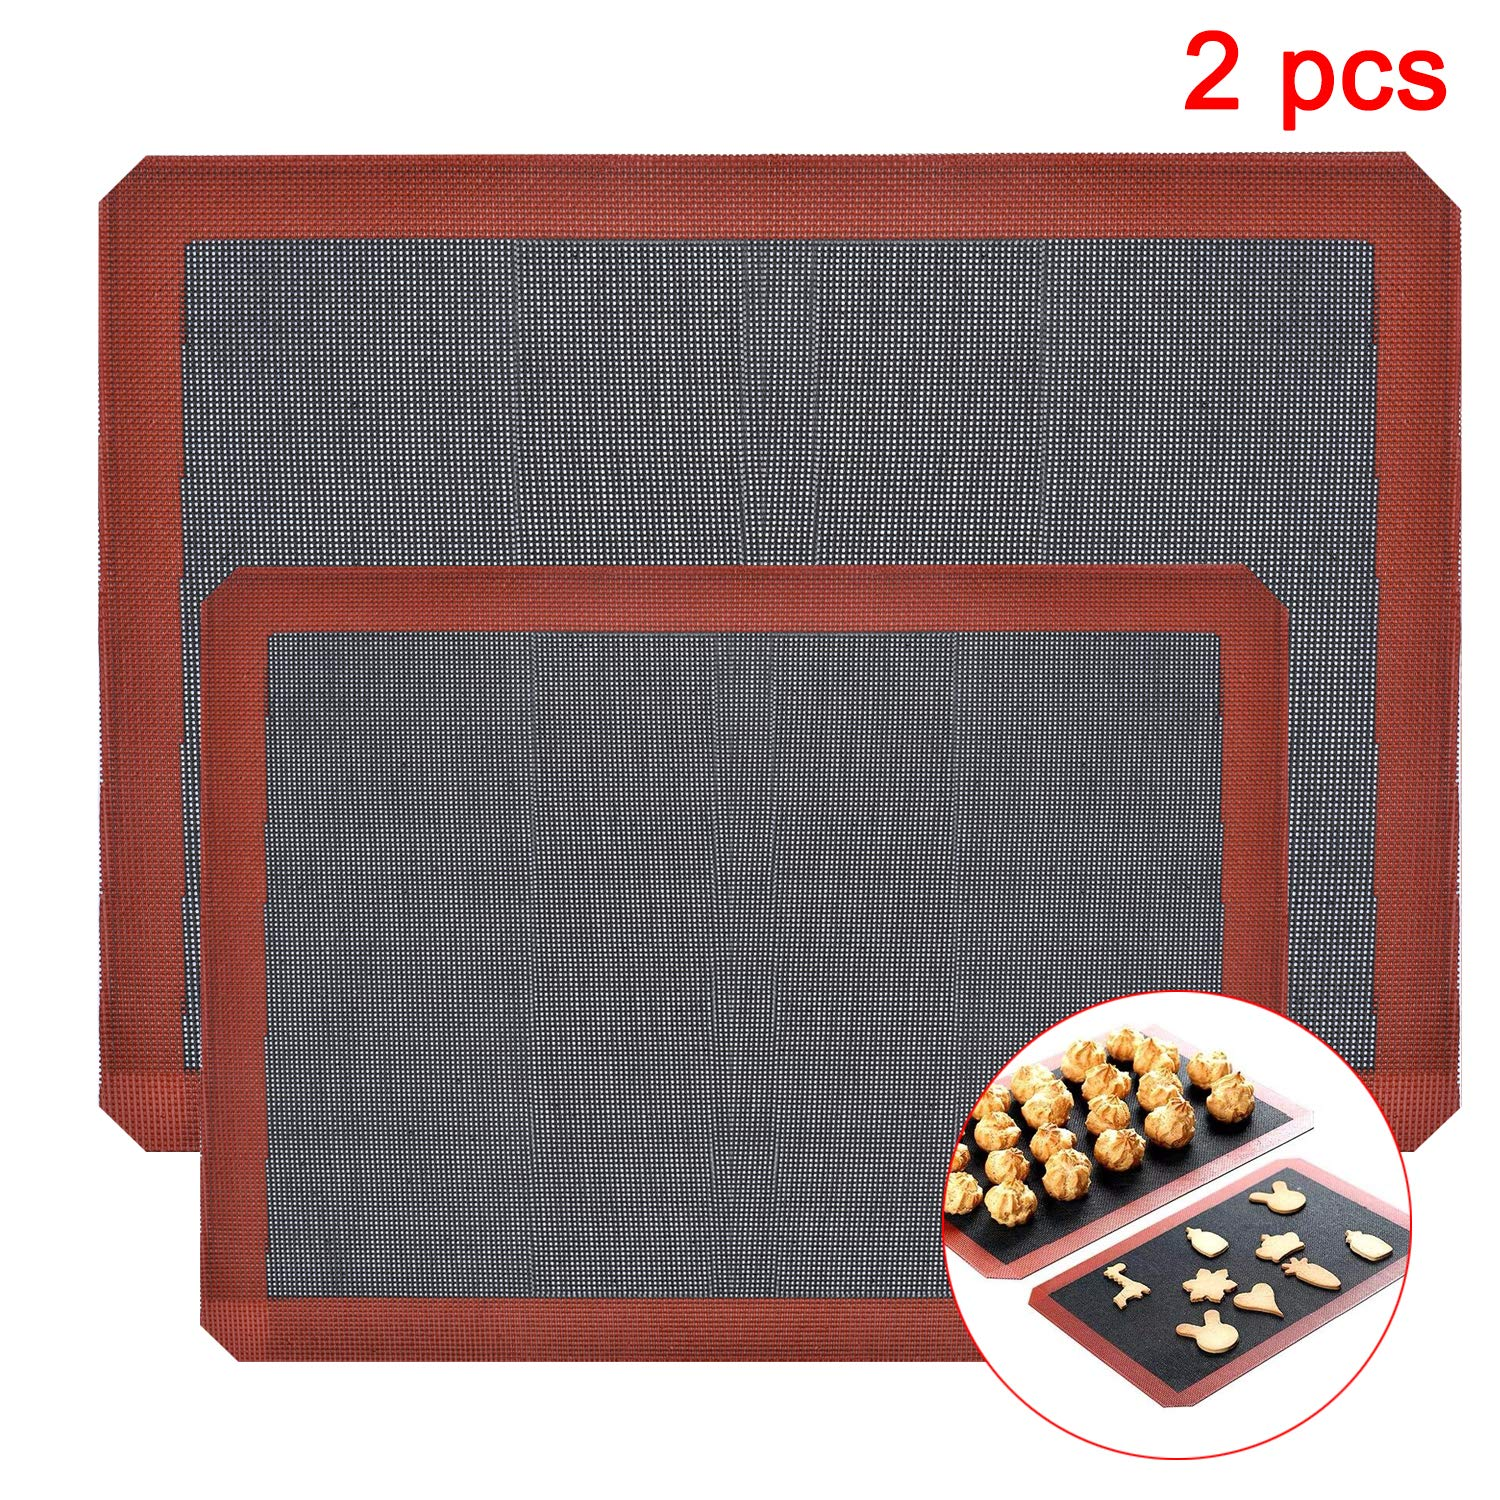 ASENKY Silicone Hollow Baking Mat Sheet, Set of 2. NonStick Oven Liner Perforated Mesh Pad, Baked biscuits Non-stick High Temperature Mat, Breathable Fiberglass Baking Mat, Double-sided Available.